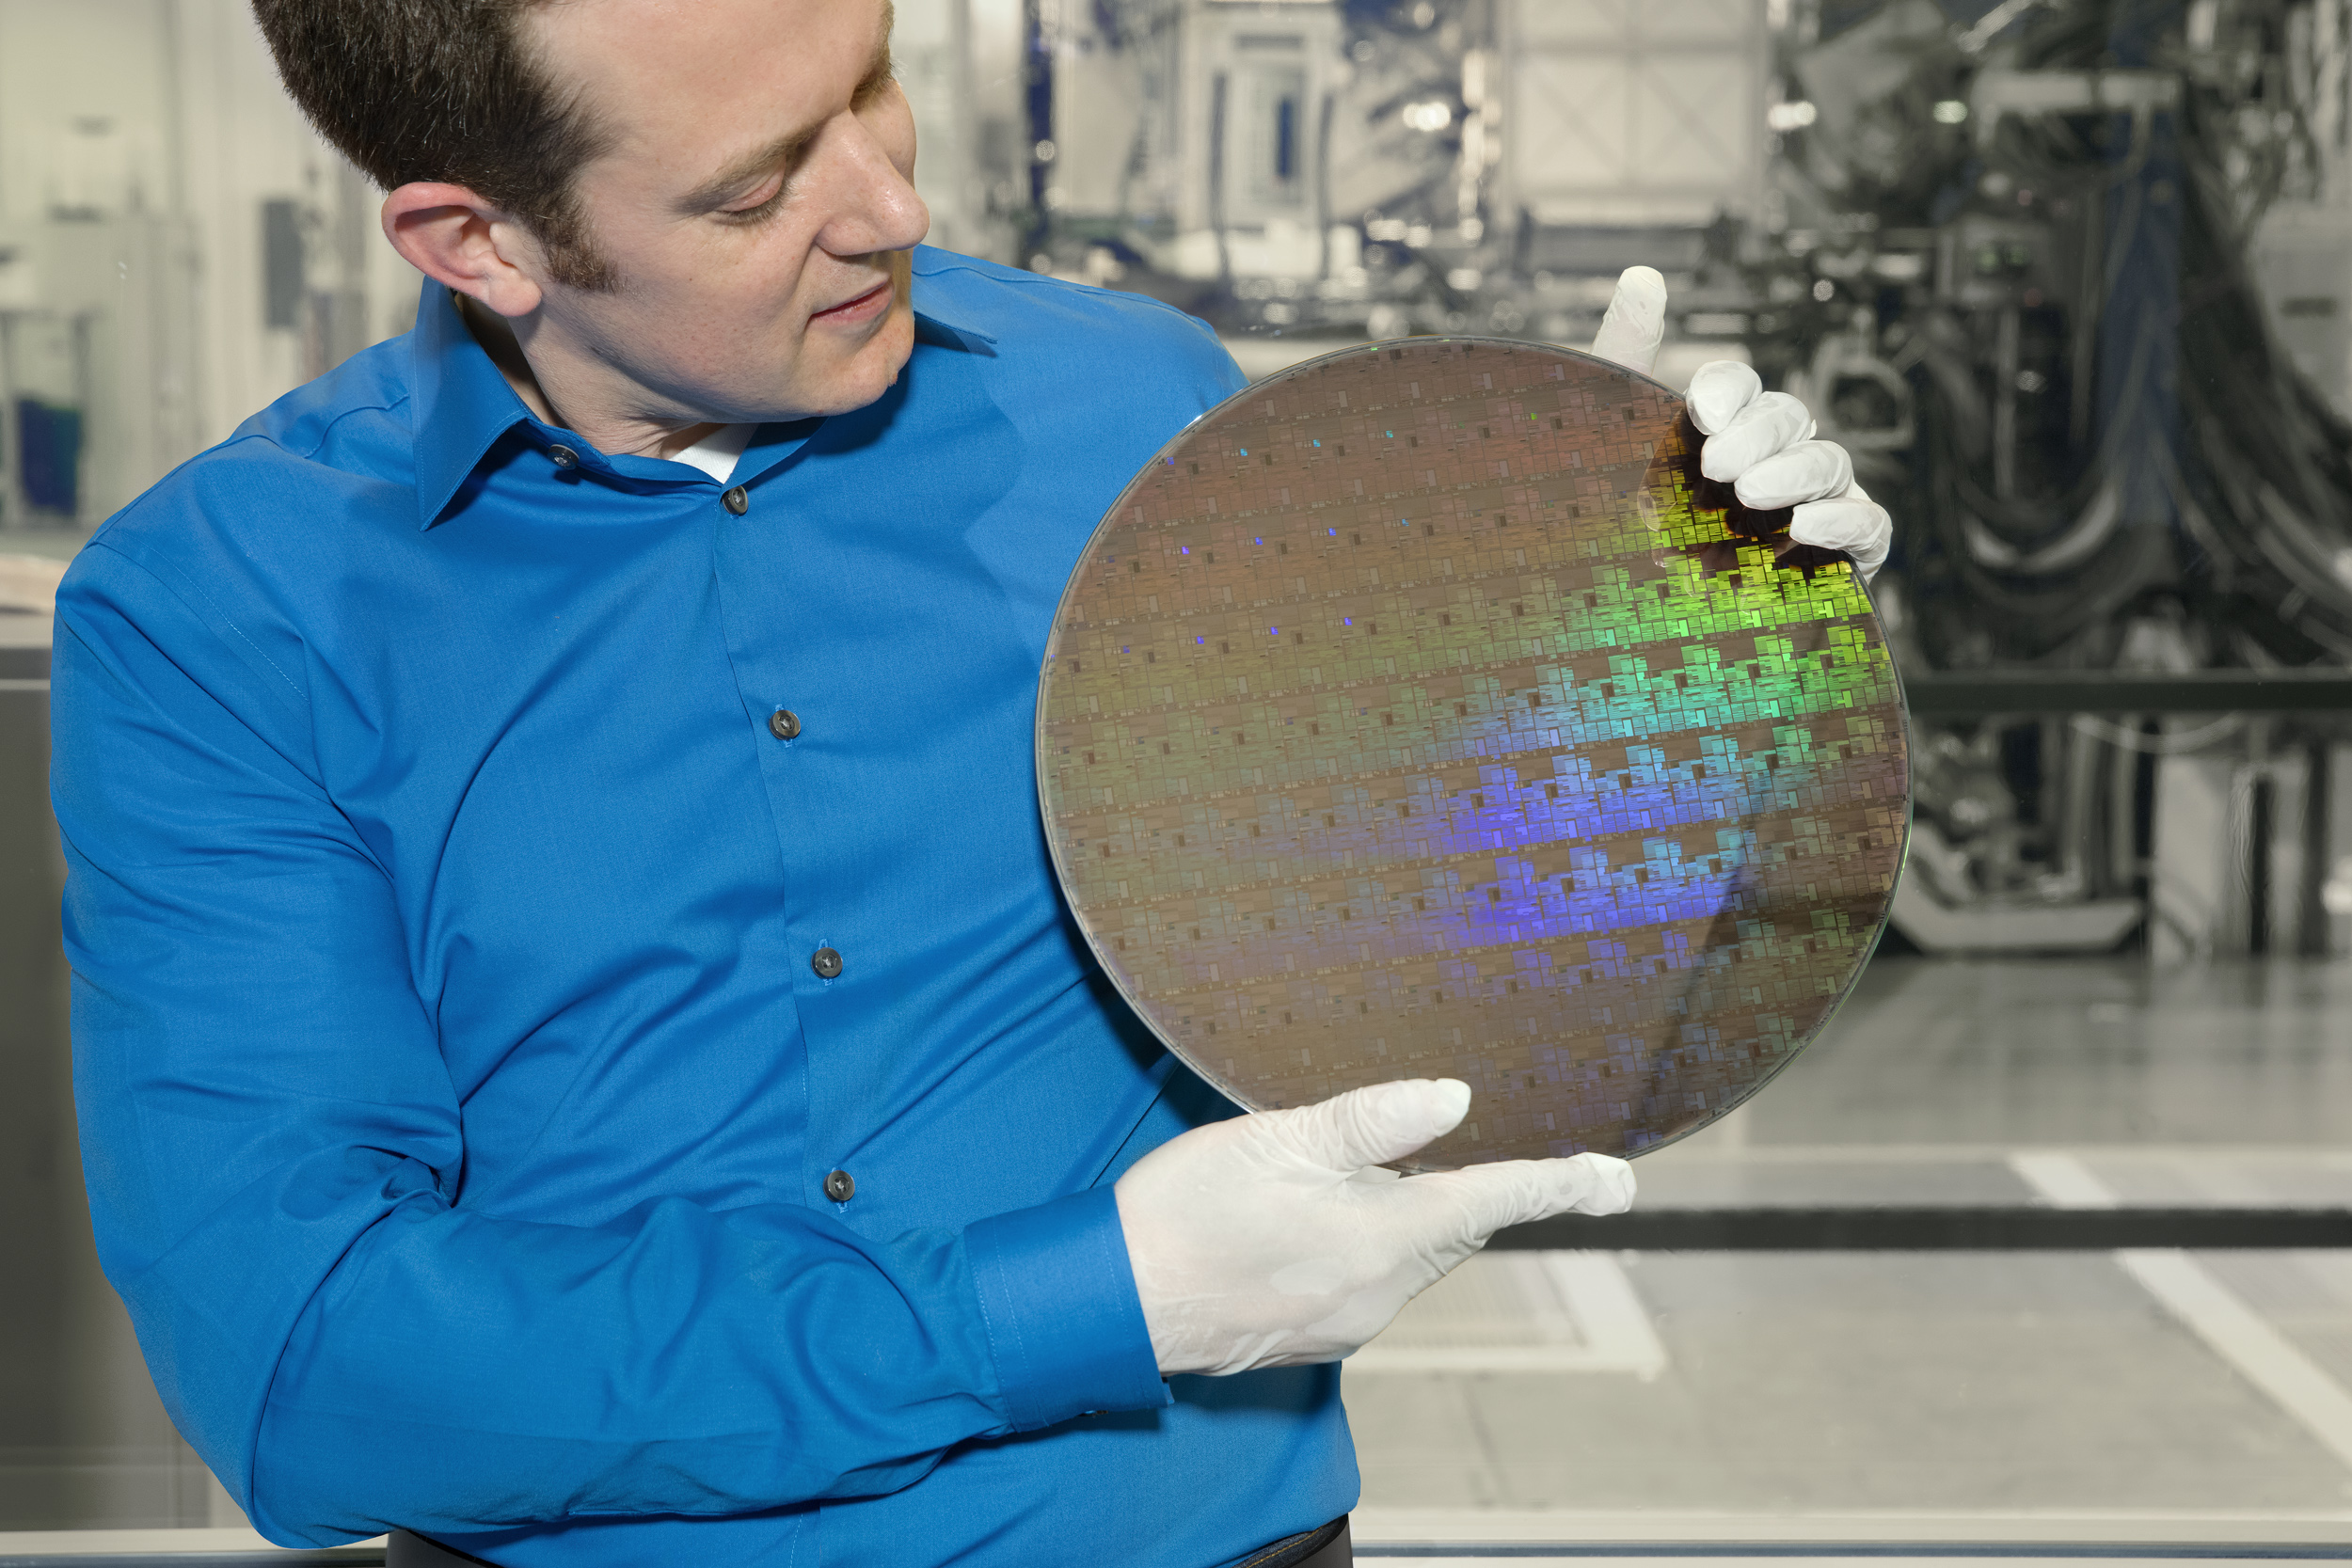 IBM says new chip technology will extend Moore's Law